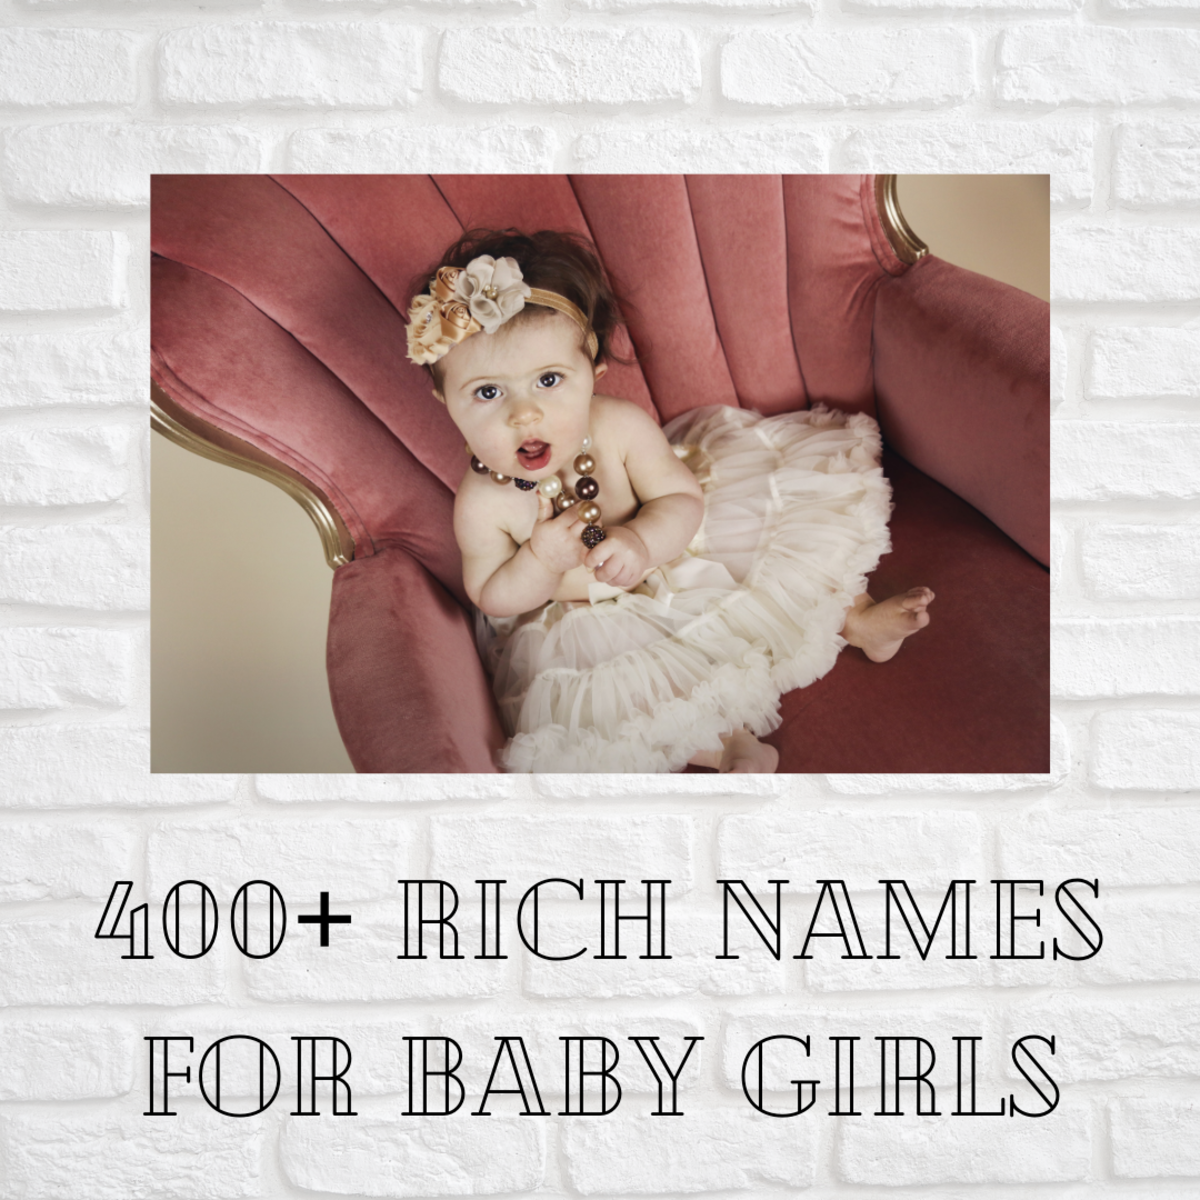 400+ Rich Baby Girl Names